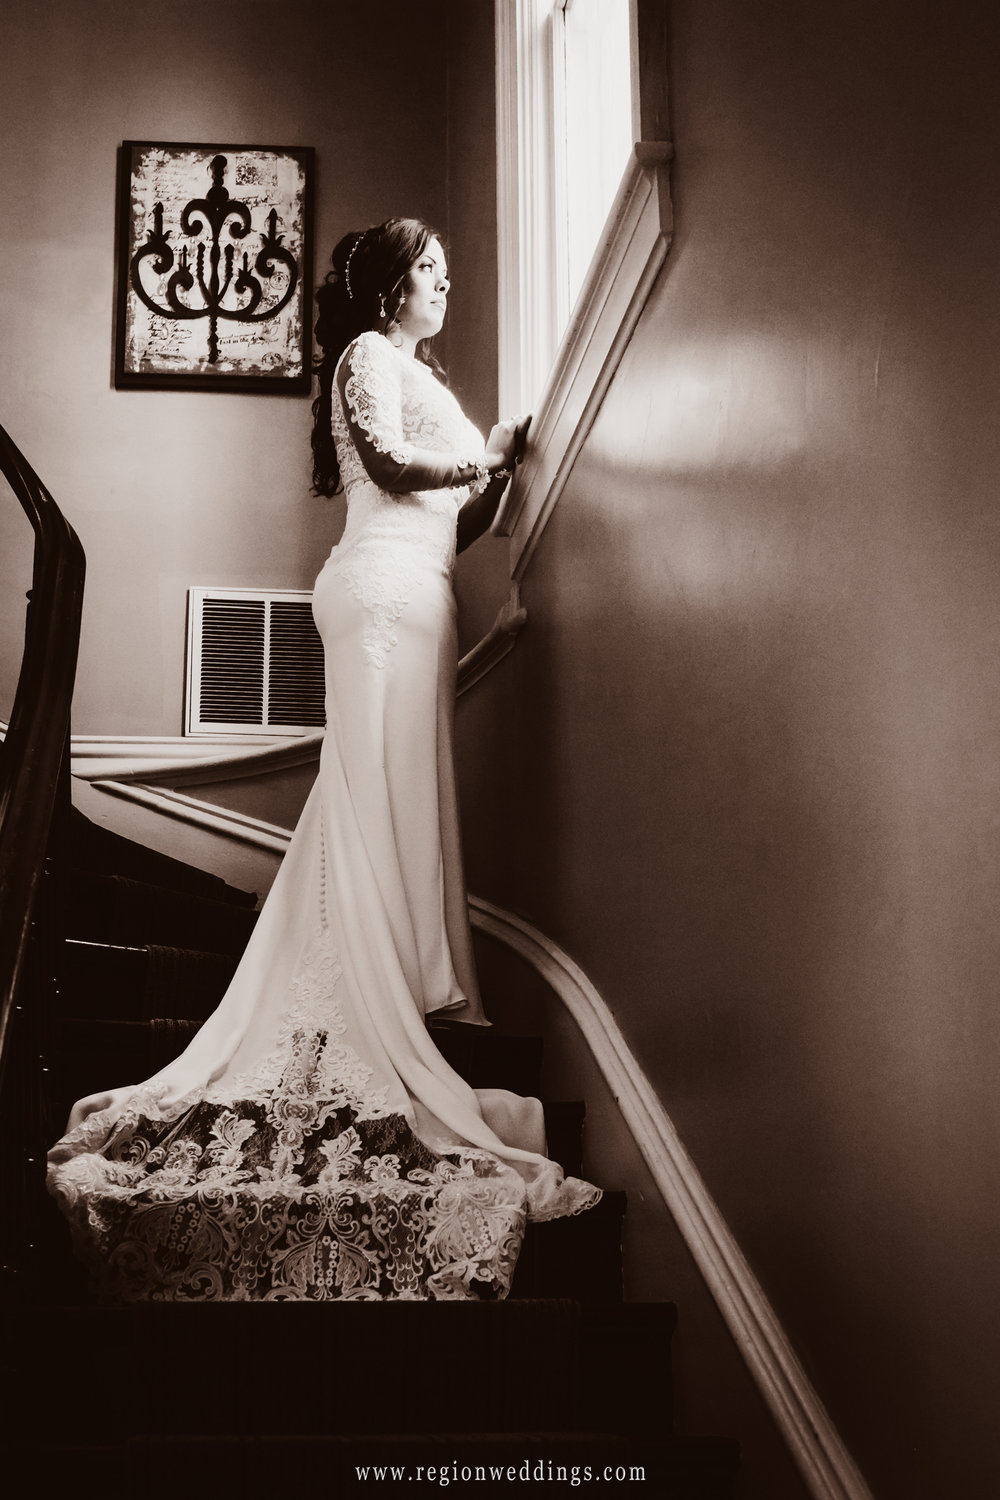 Bride on the staircase at The Uptown Center in Michigan City.